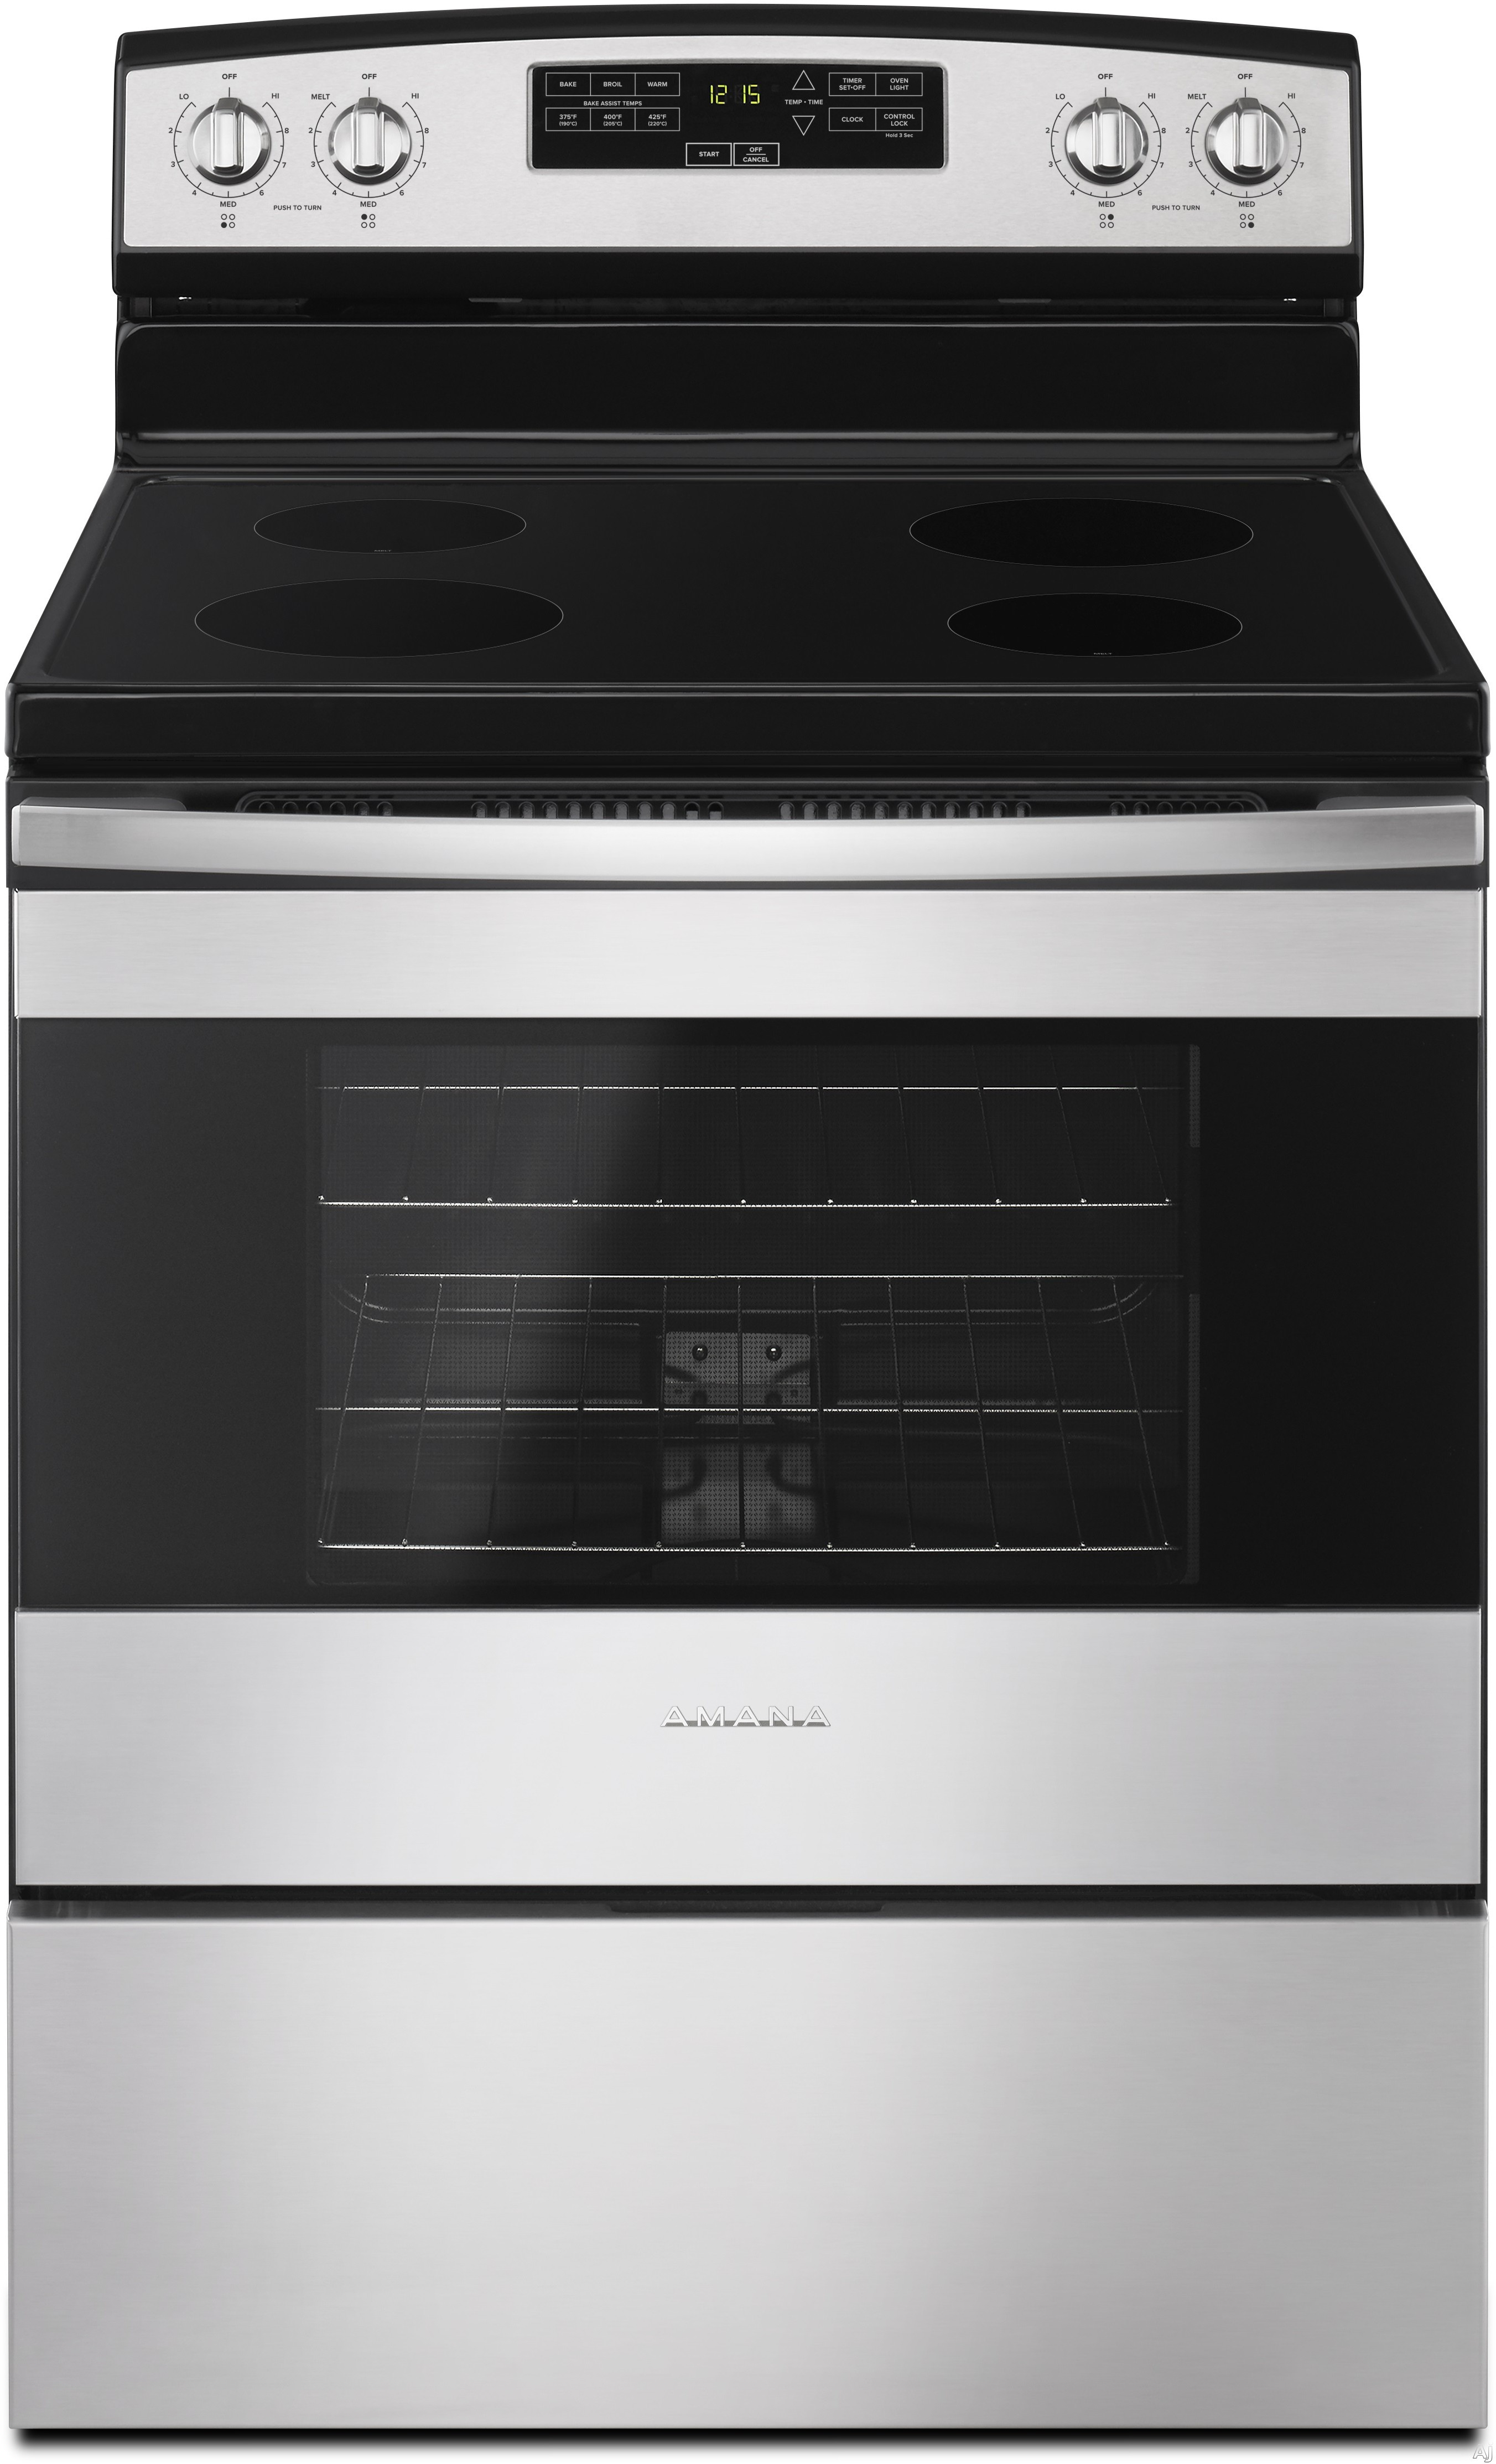 Amana Aer6303mf 30 Inch Electric Range With 4.8 Cu. Ft. Capacity, 4 Radiant Heating Elements, Temp Assure Cooking System, Bake Assist Temps, Warm Hold, Oven Lockout, Extra-large Window And Sabbath Mode